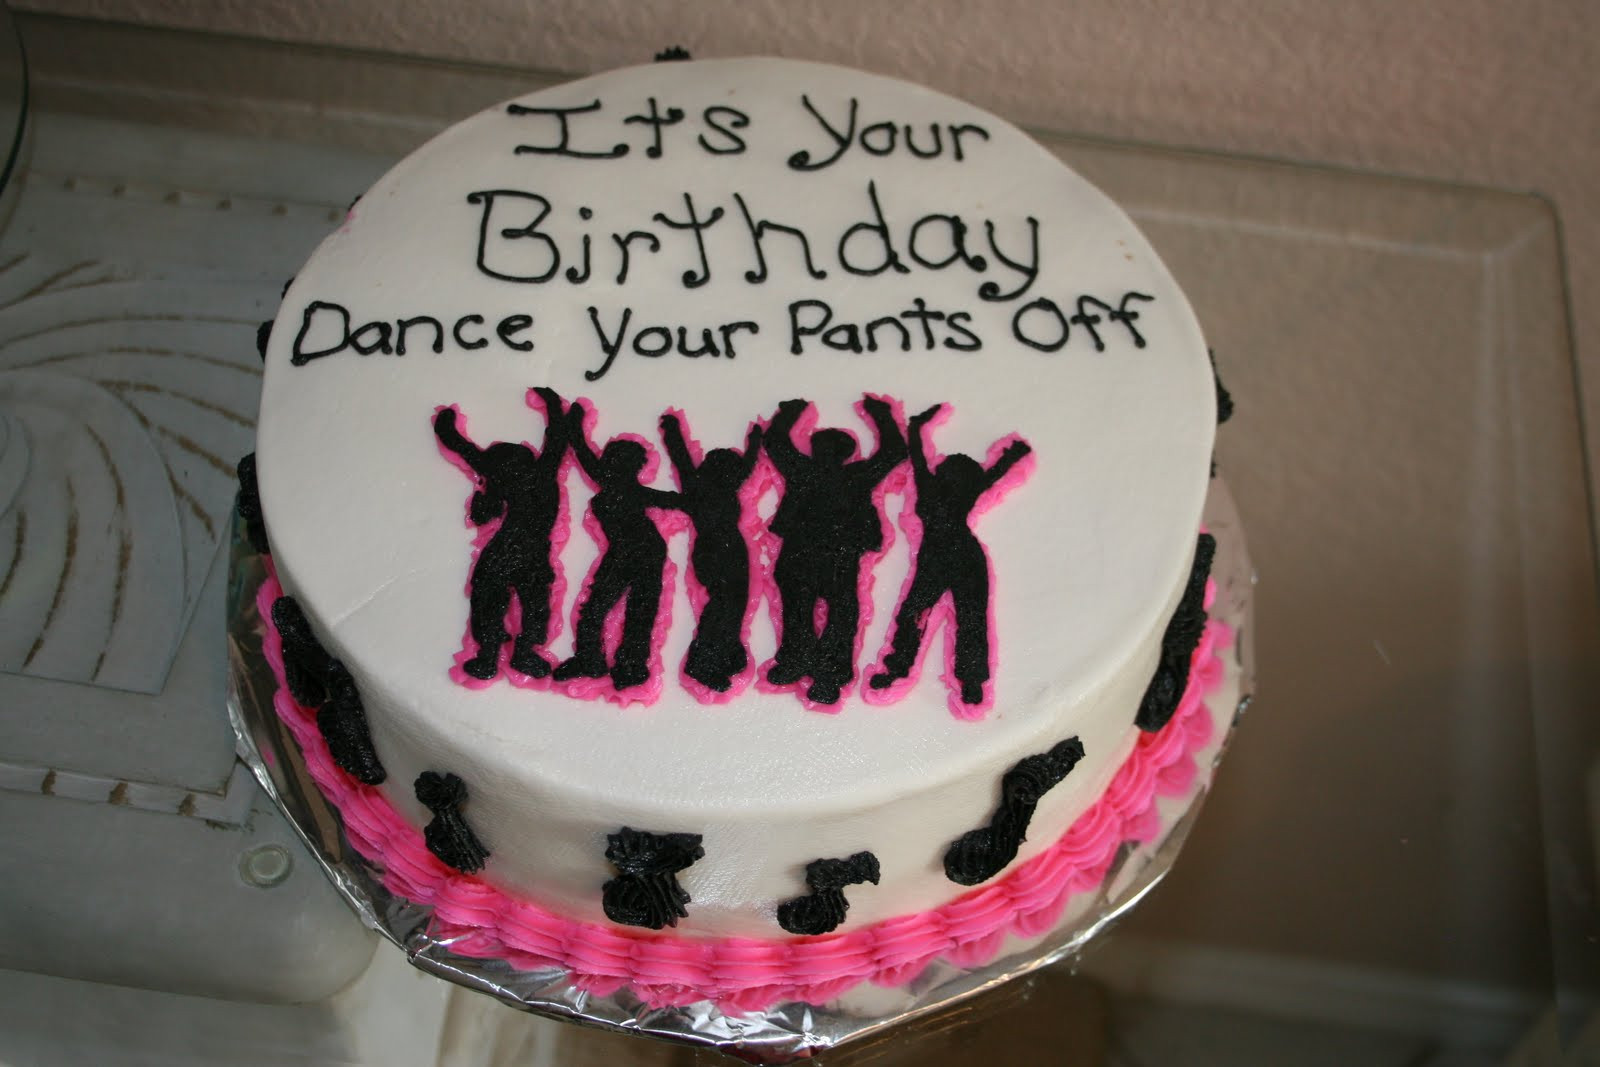 Best ideas about Dancing Birthday Cake . Save or Pin Rachel s Creative Cakes Dance Party Cake Now.